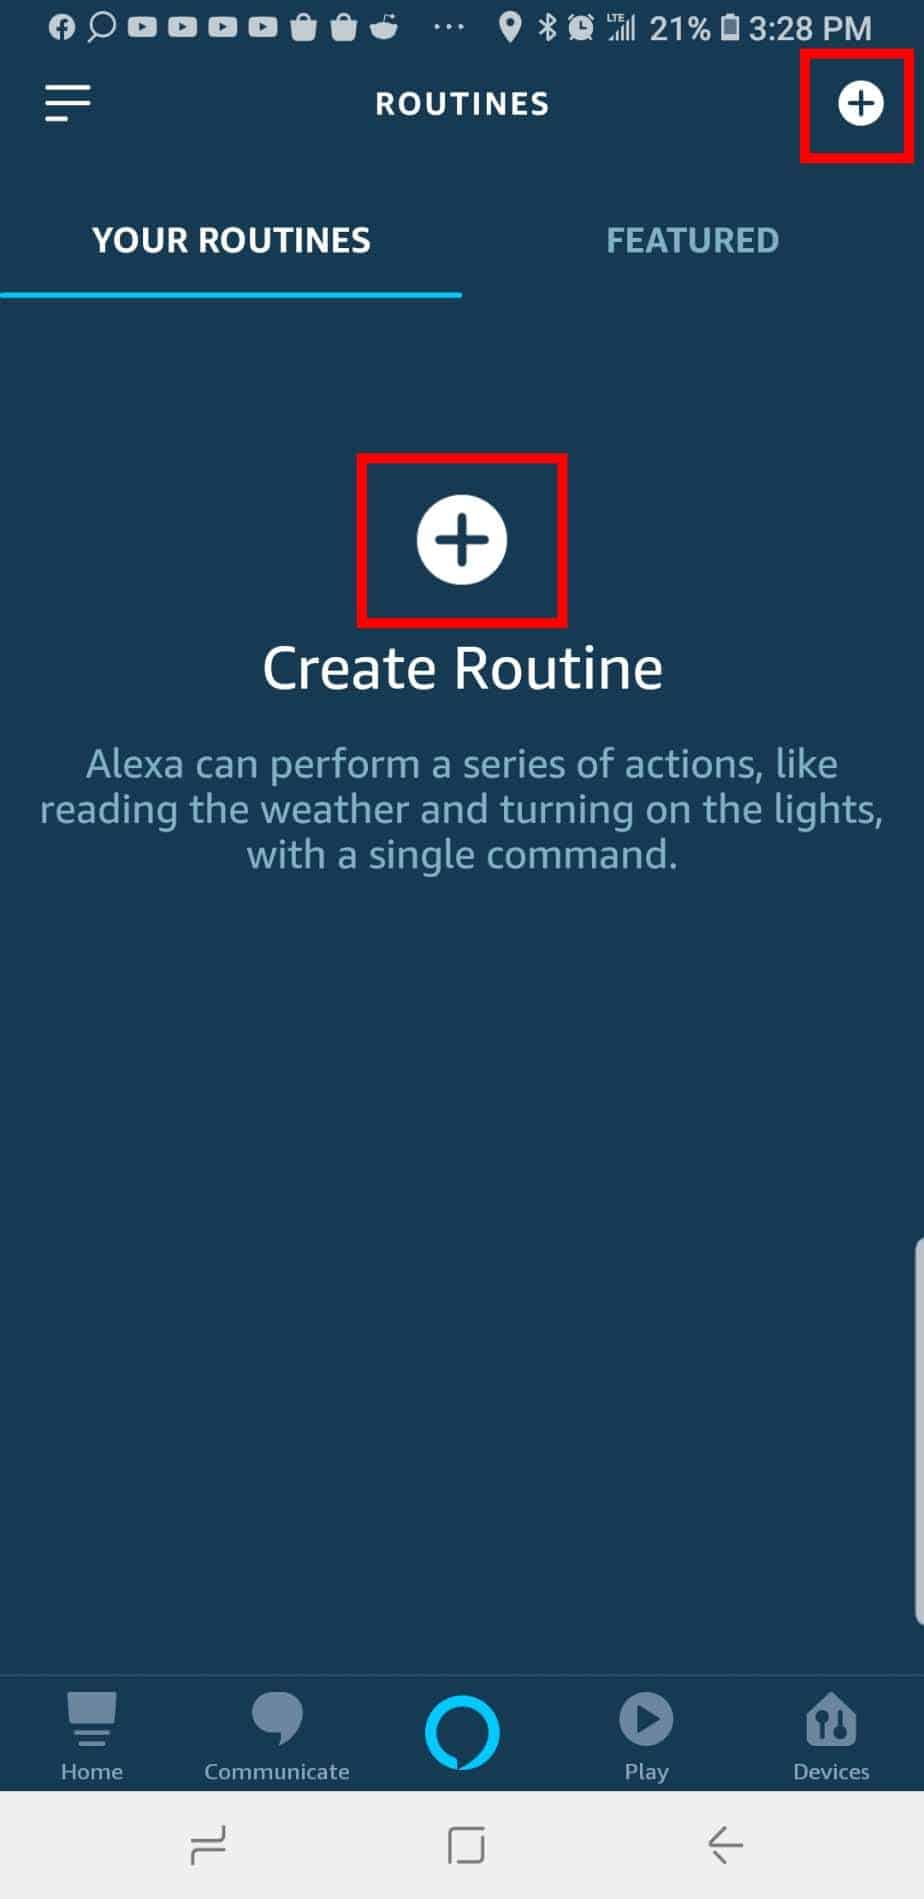 """Select """"Creat Routine"""""""